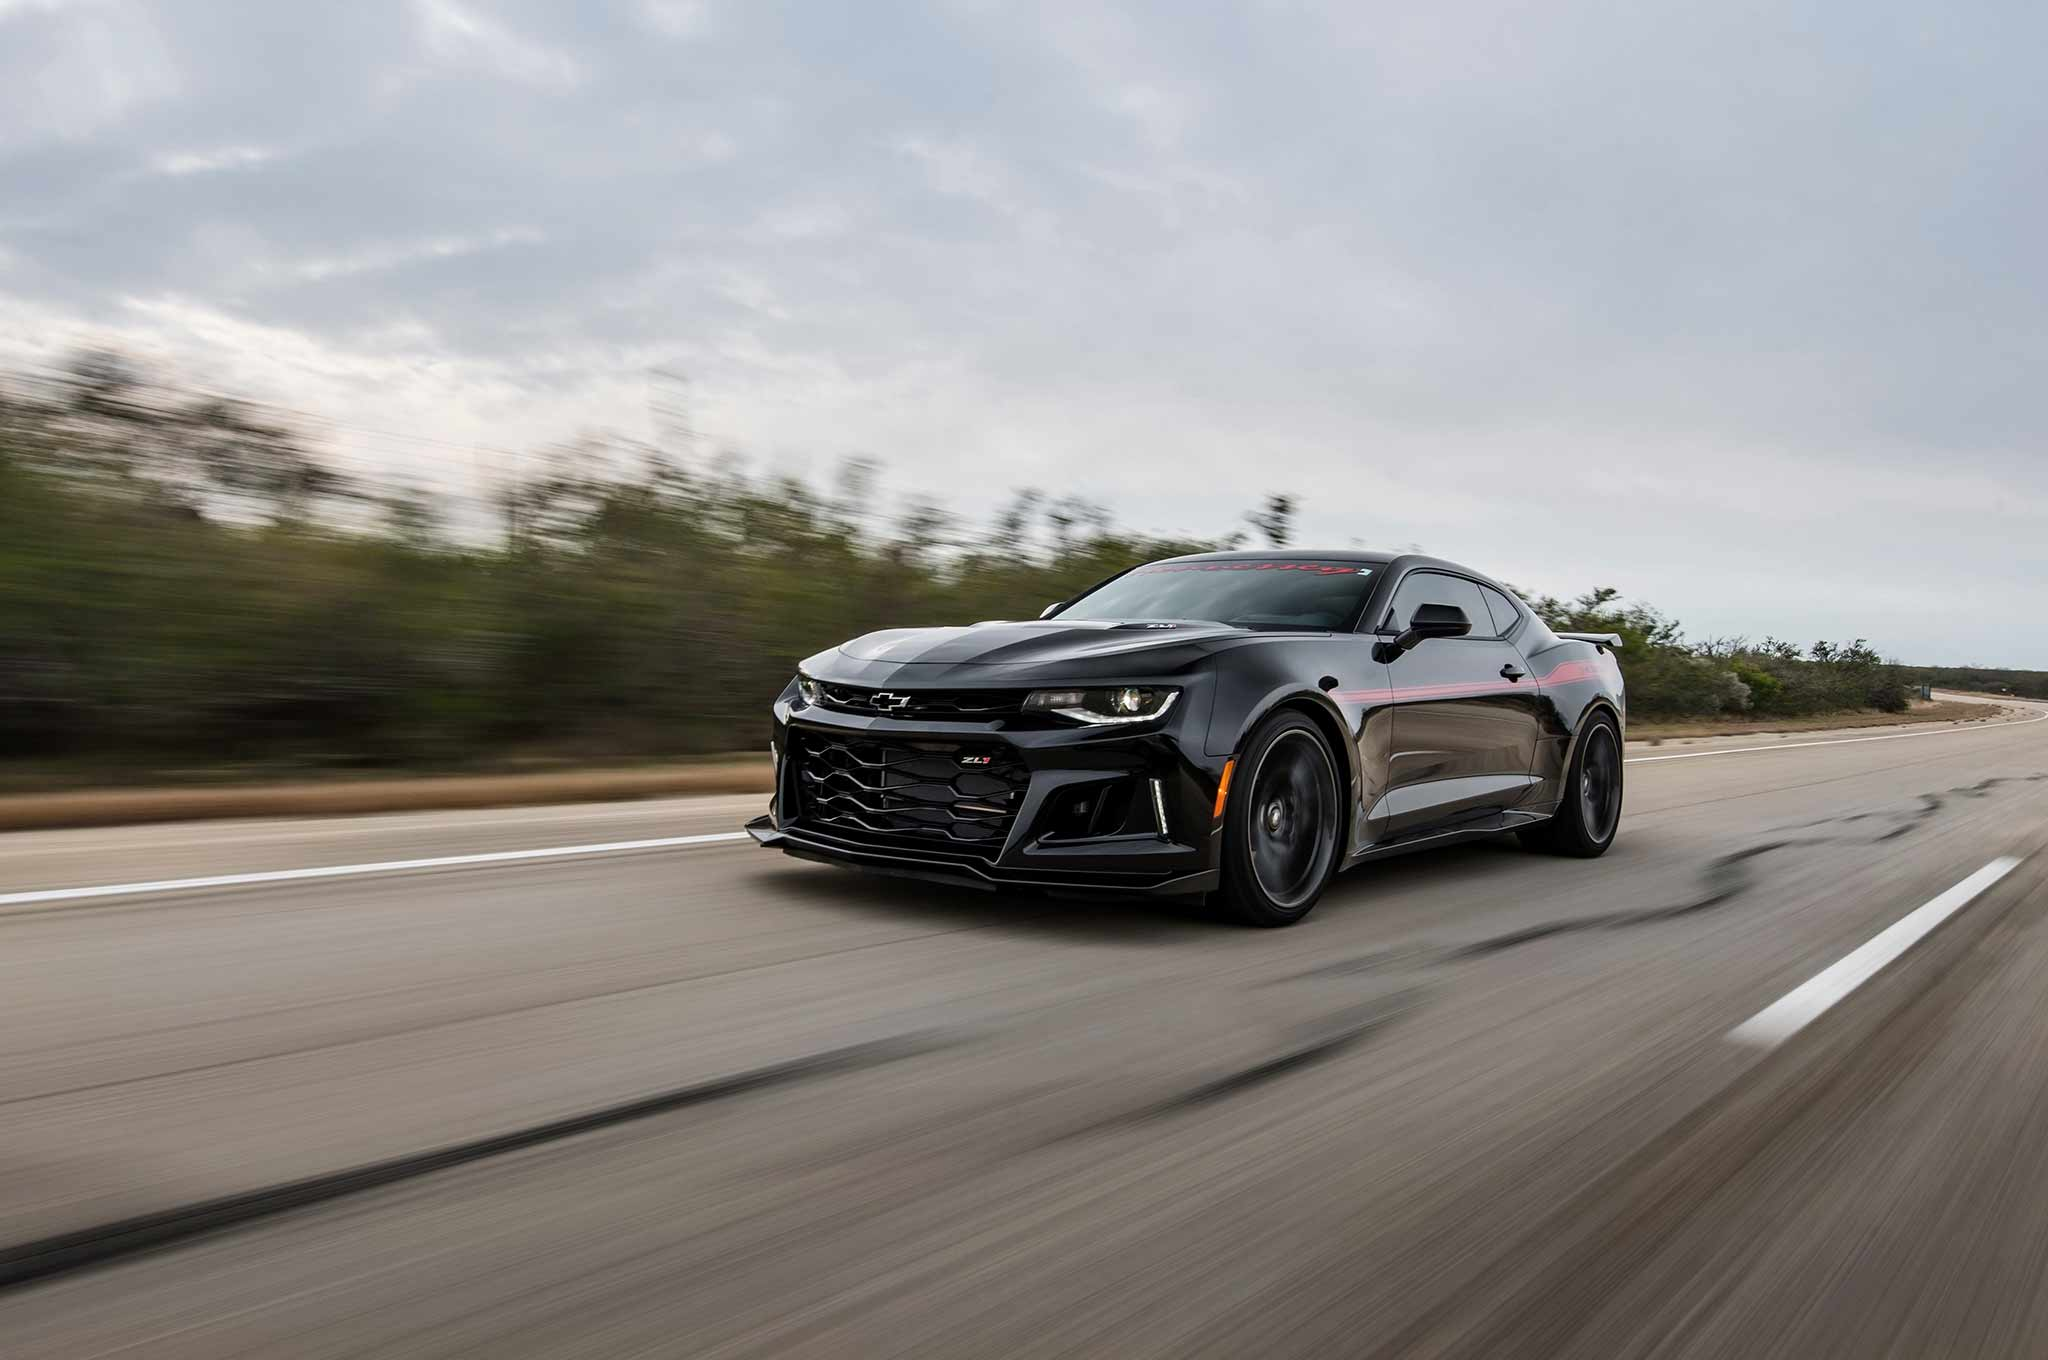 Hennessey Exorcist Camaro Zl1 Hits 217 Mph In New Video